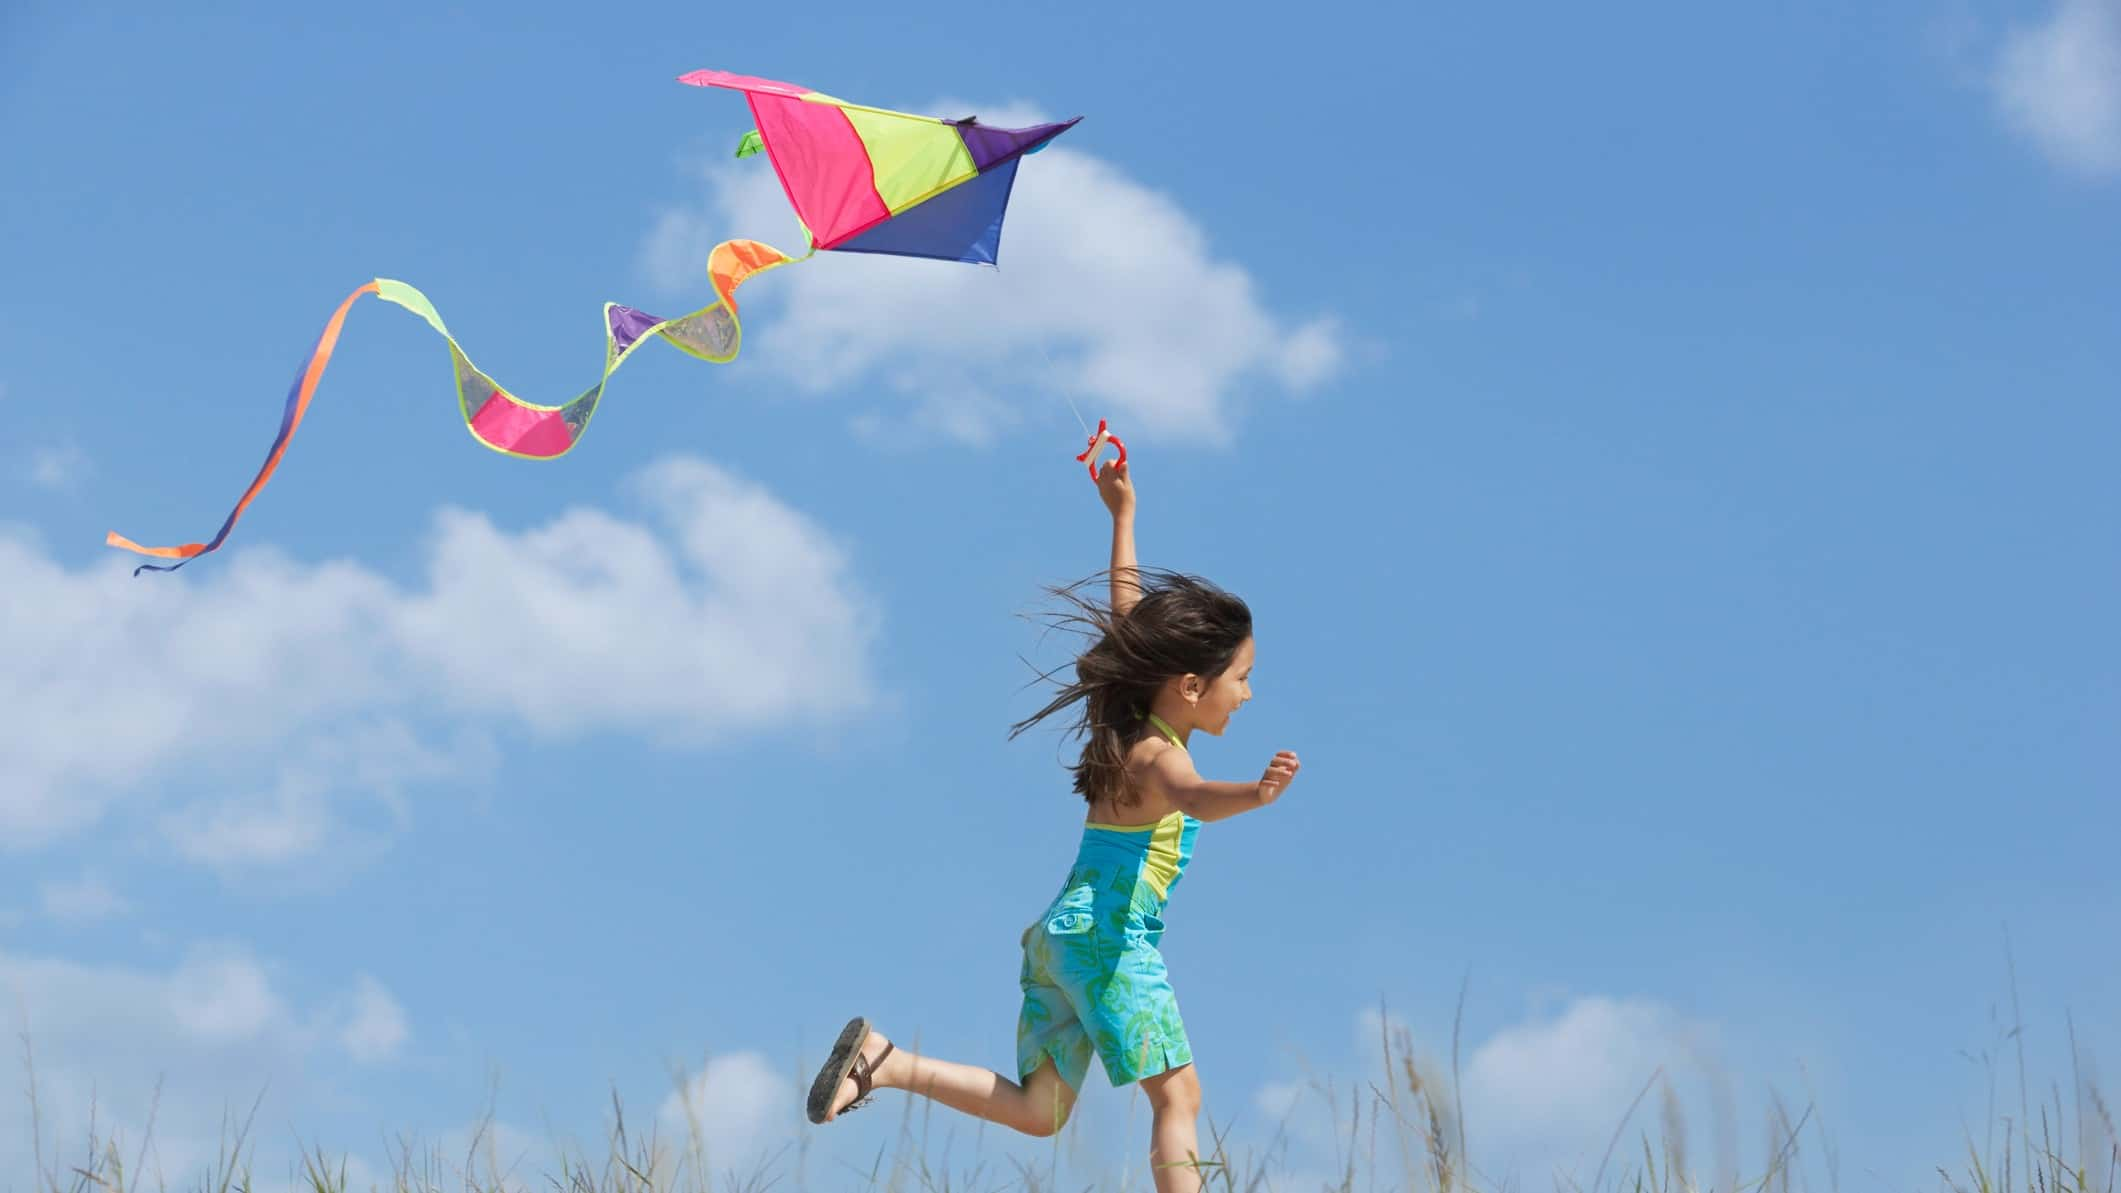 A girl runs along with her kite flying high in the sky.